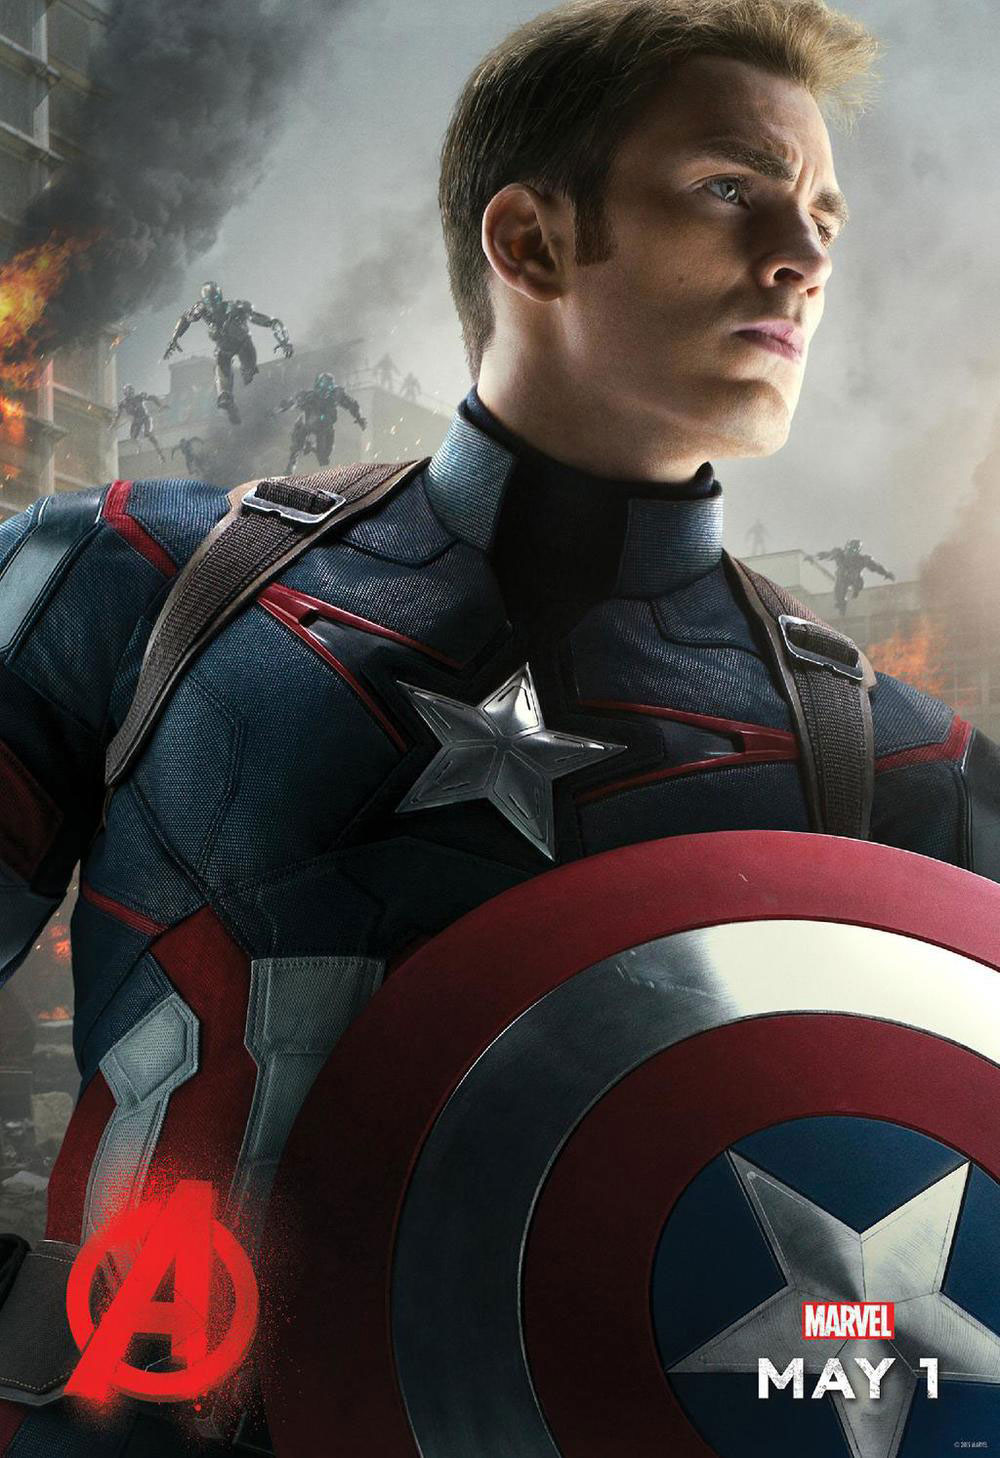 Captain America Avengers 2 Age of Ultron poster